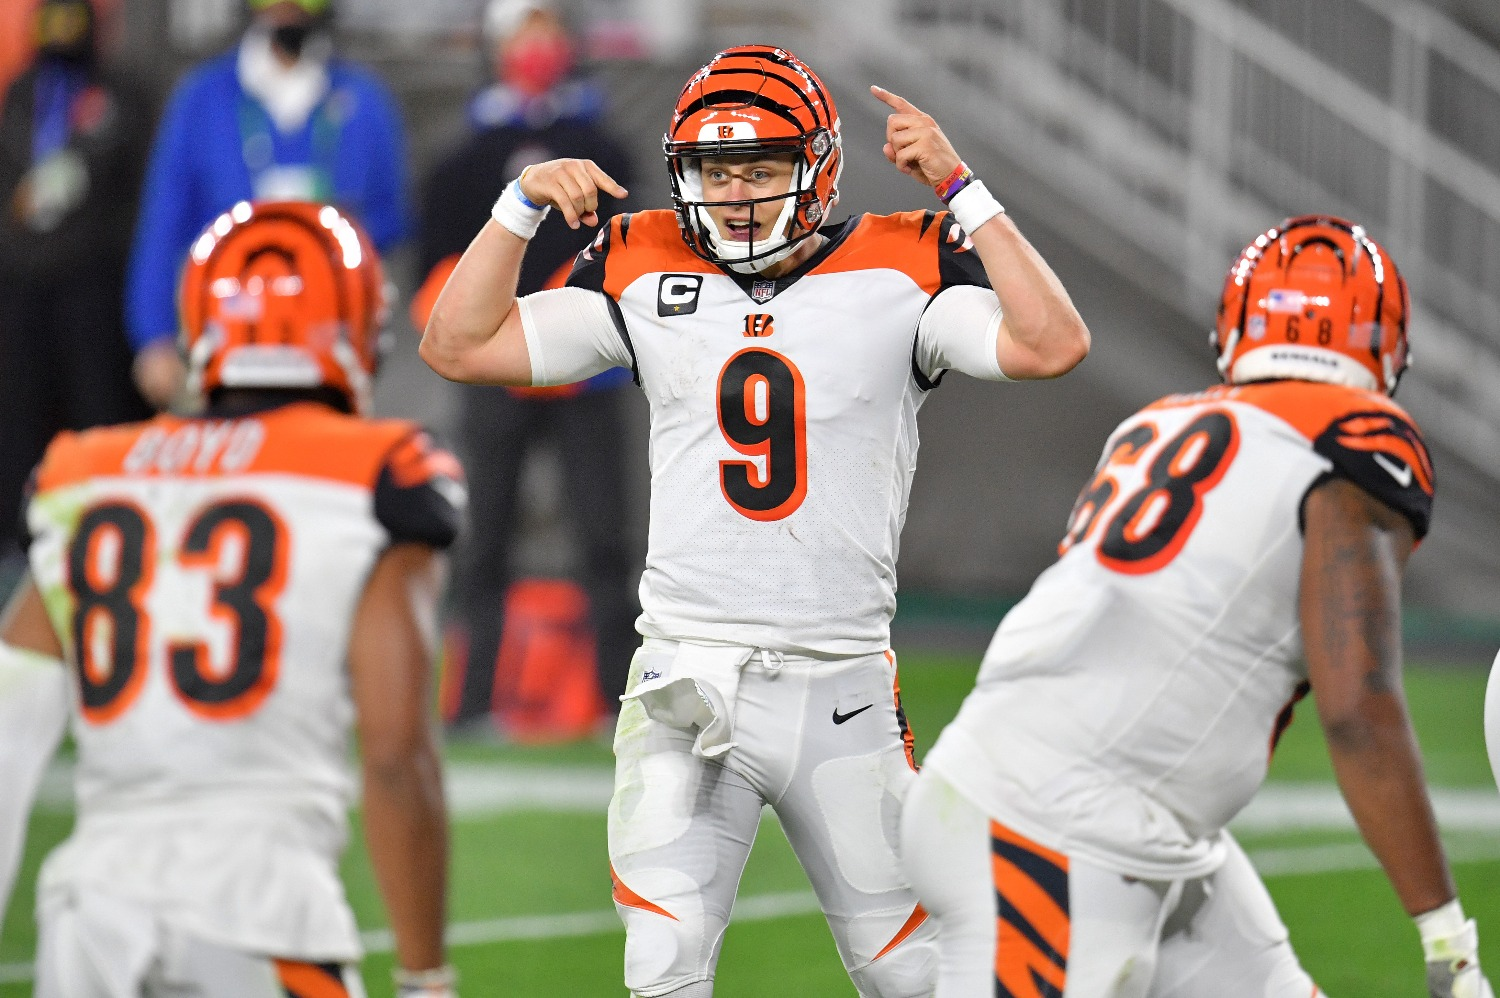 Joe Burrow and the Cincinnati Bengals lost starting TE C.J. Uzomah to a season-ending injury in Thursday night's loss to the Browns.